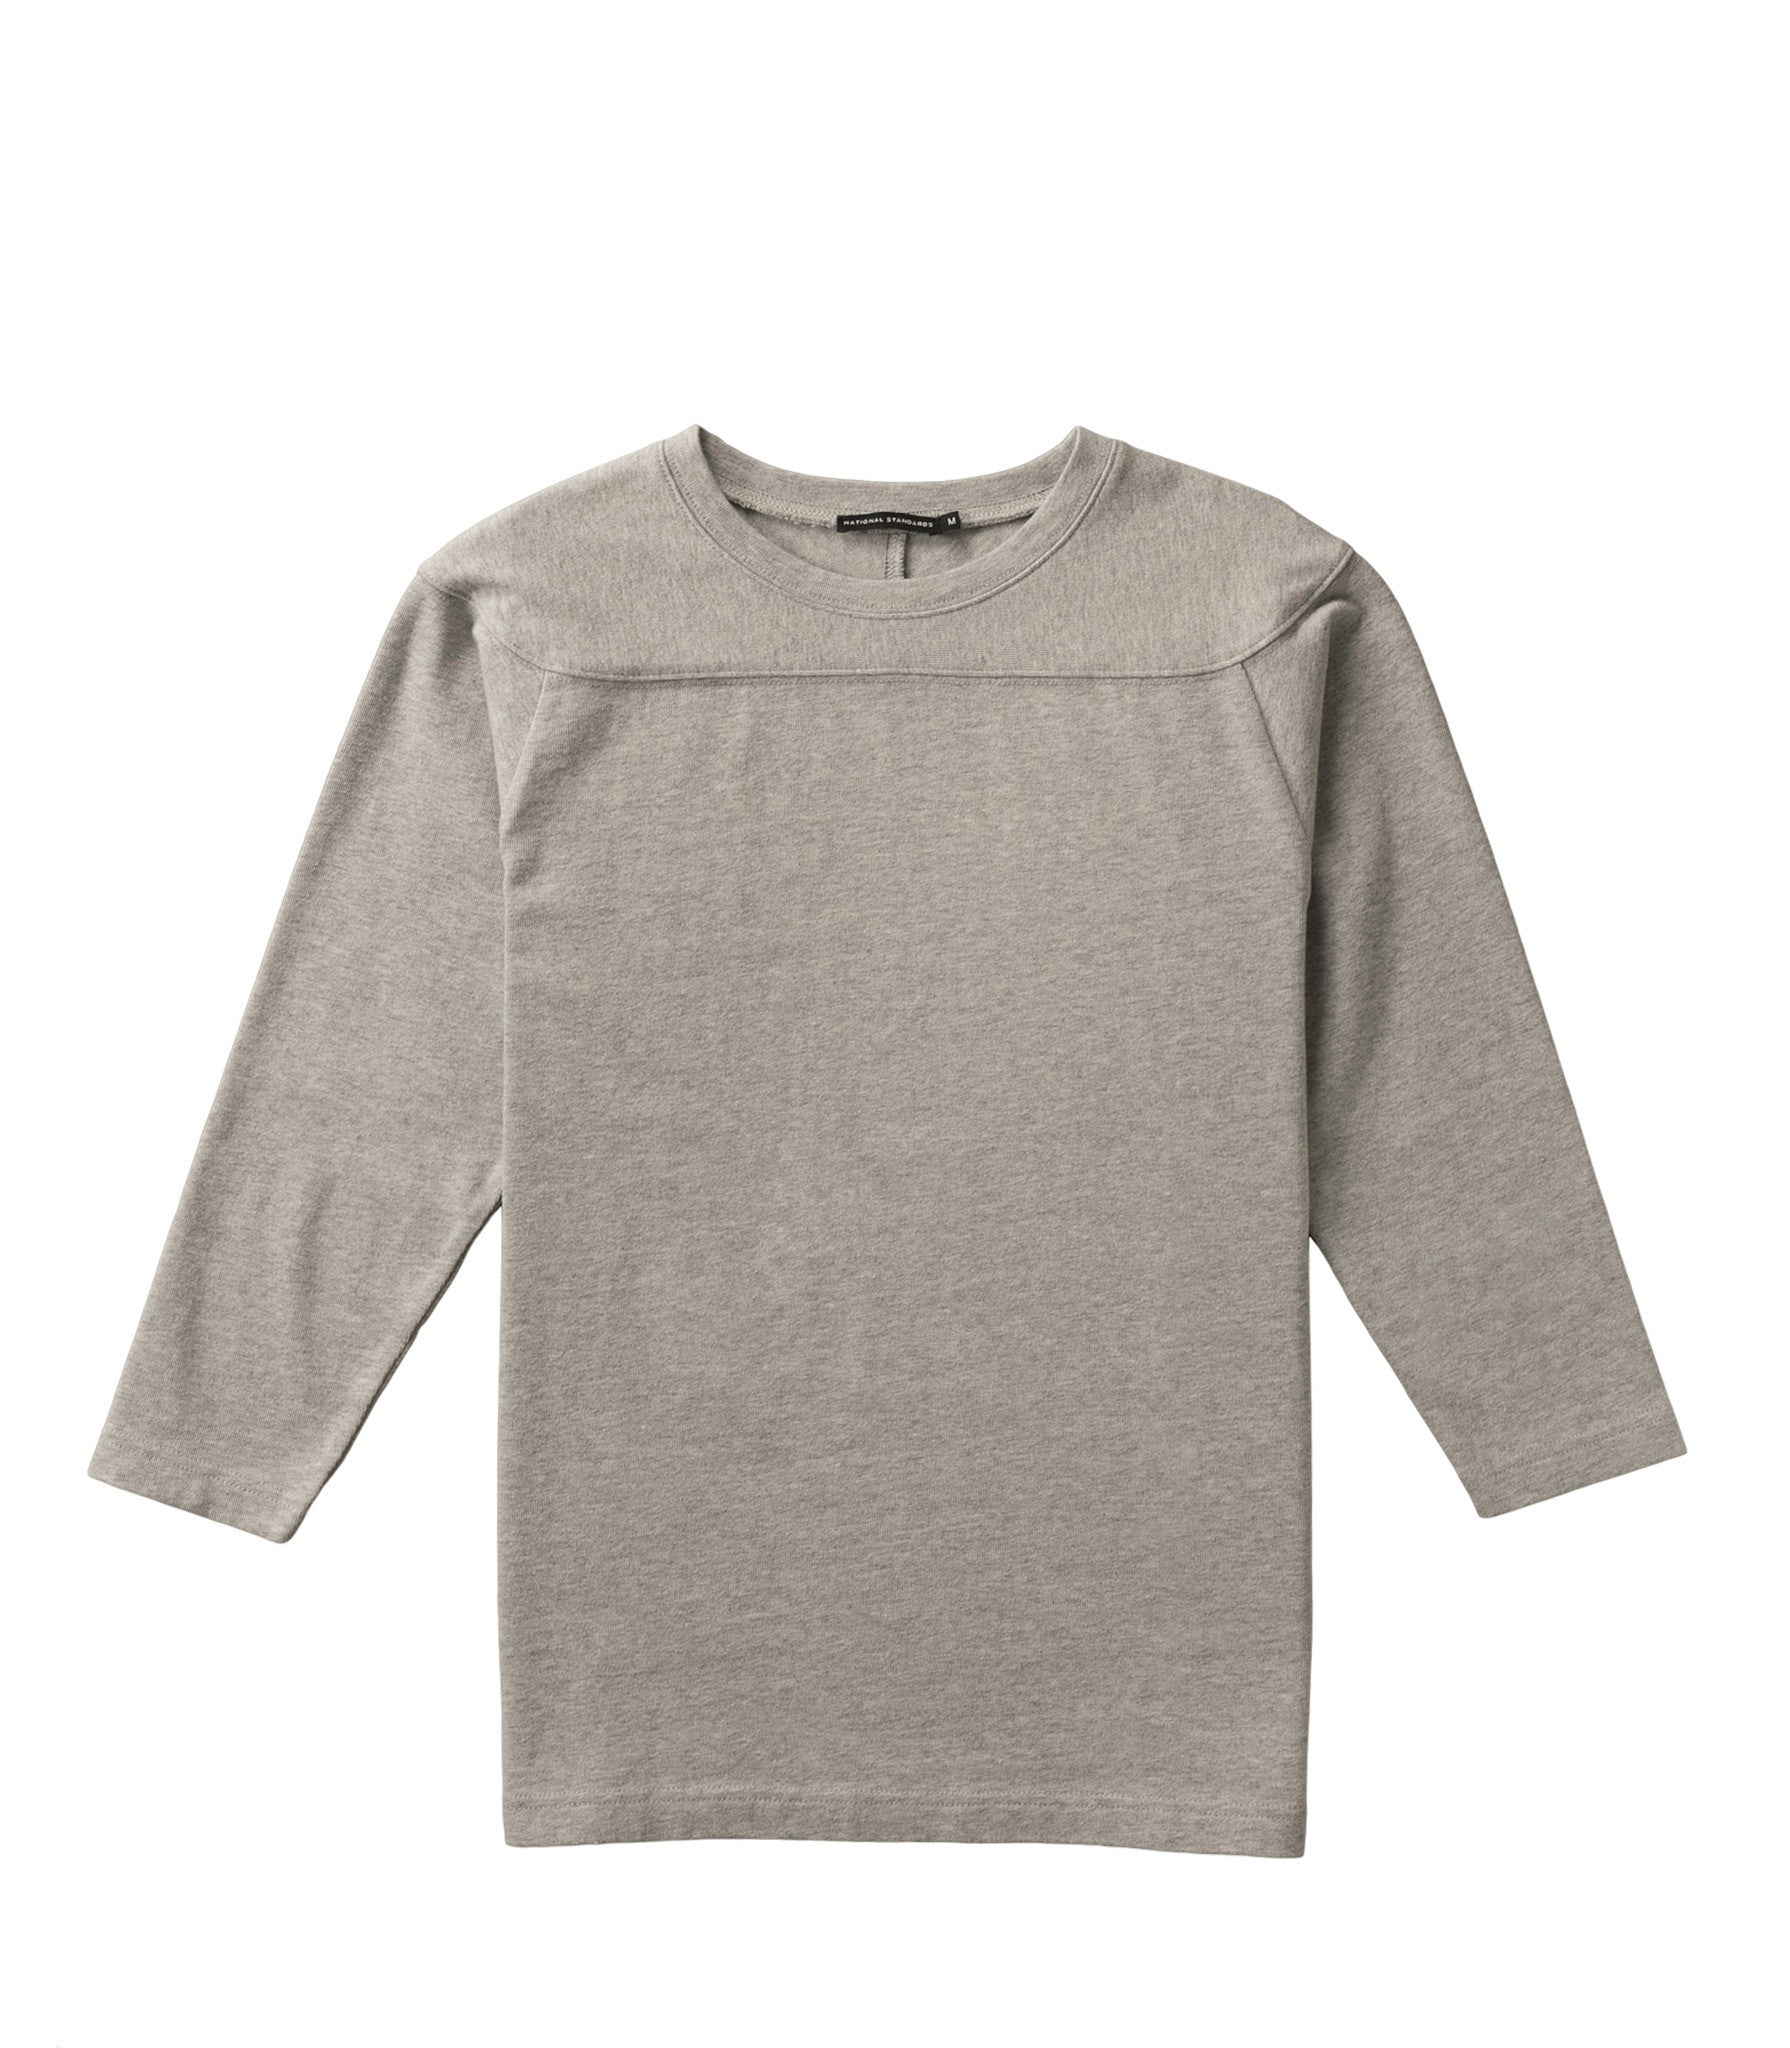 Supreme cotton game Jersey in Grey